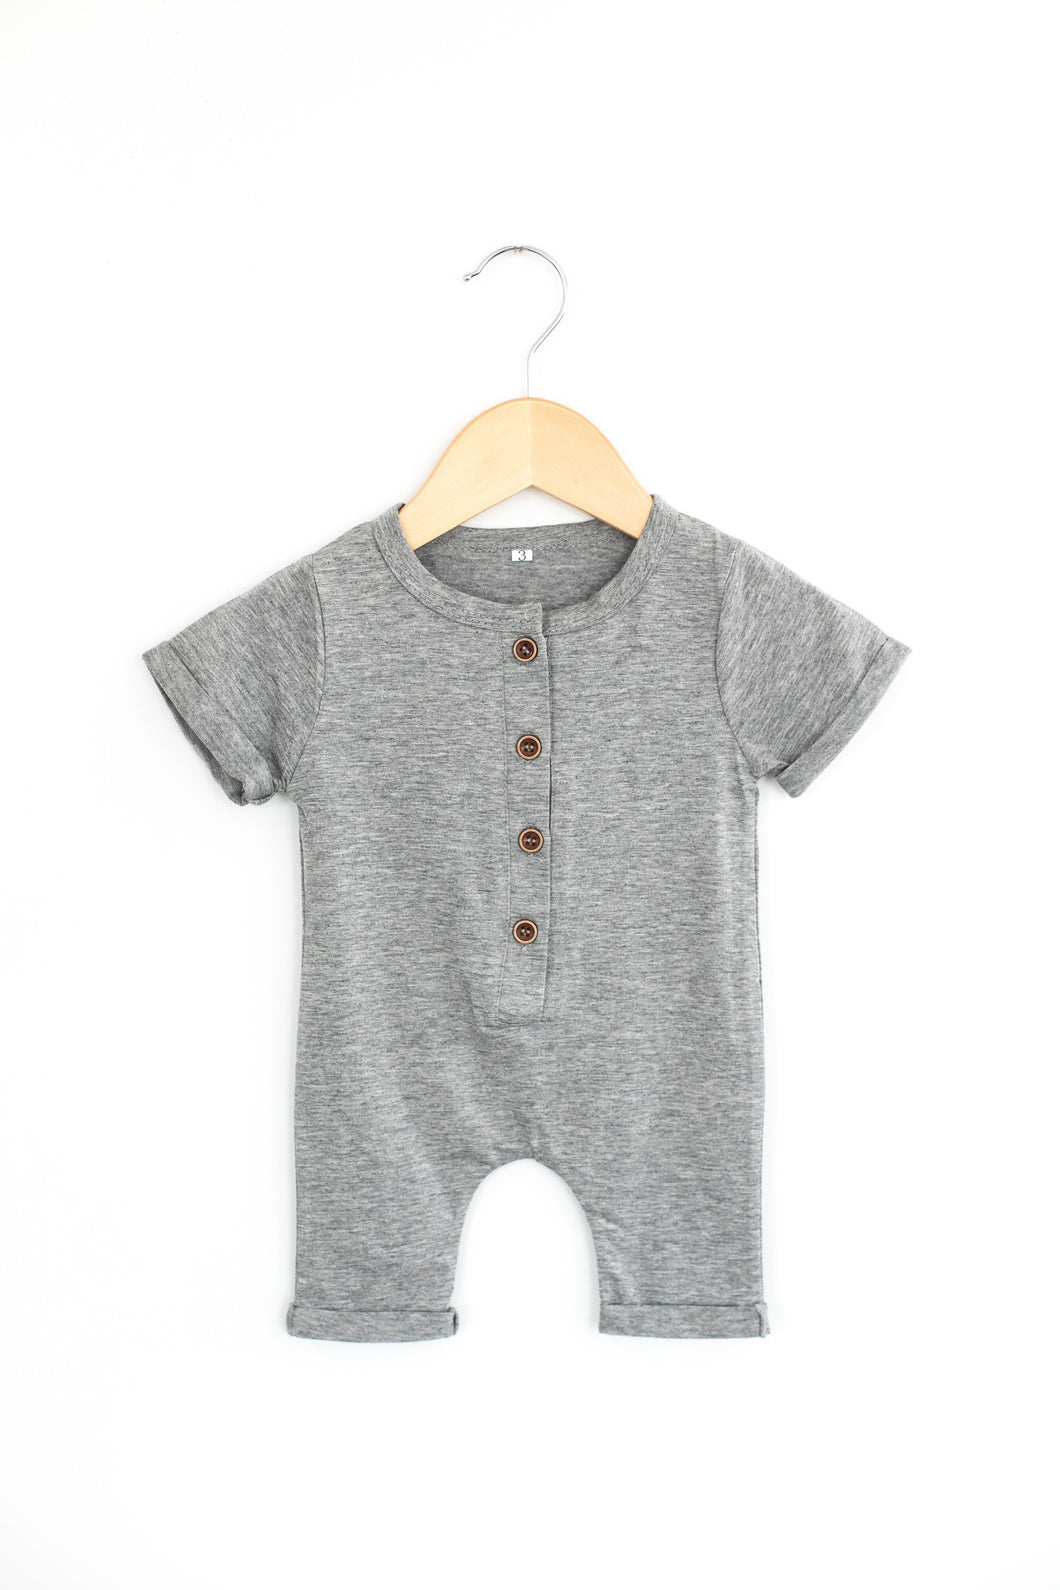 Plain Romper in Gray - Desert Fawn